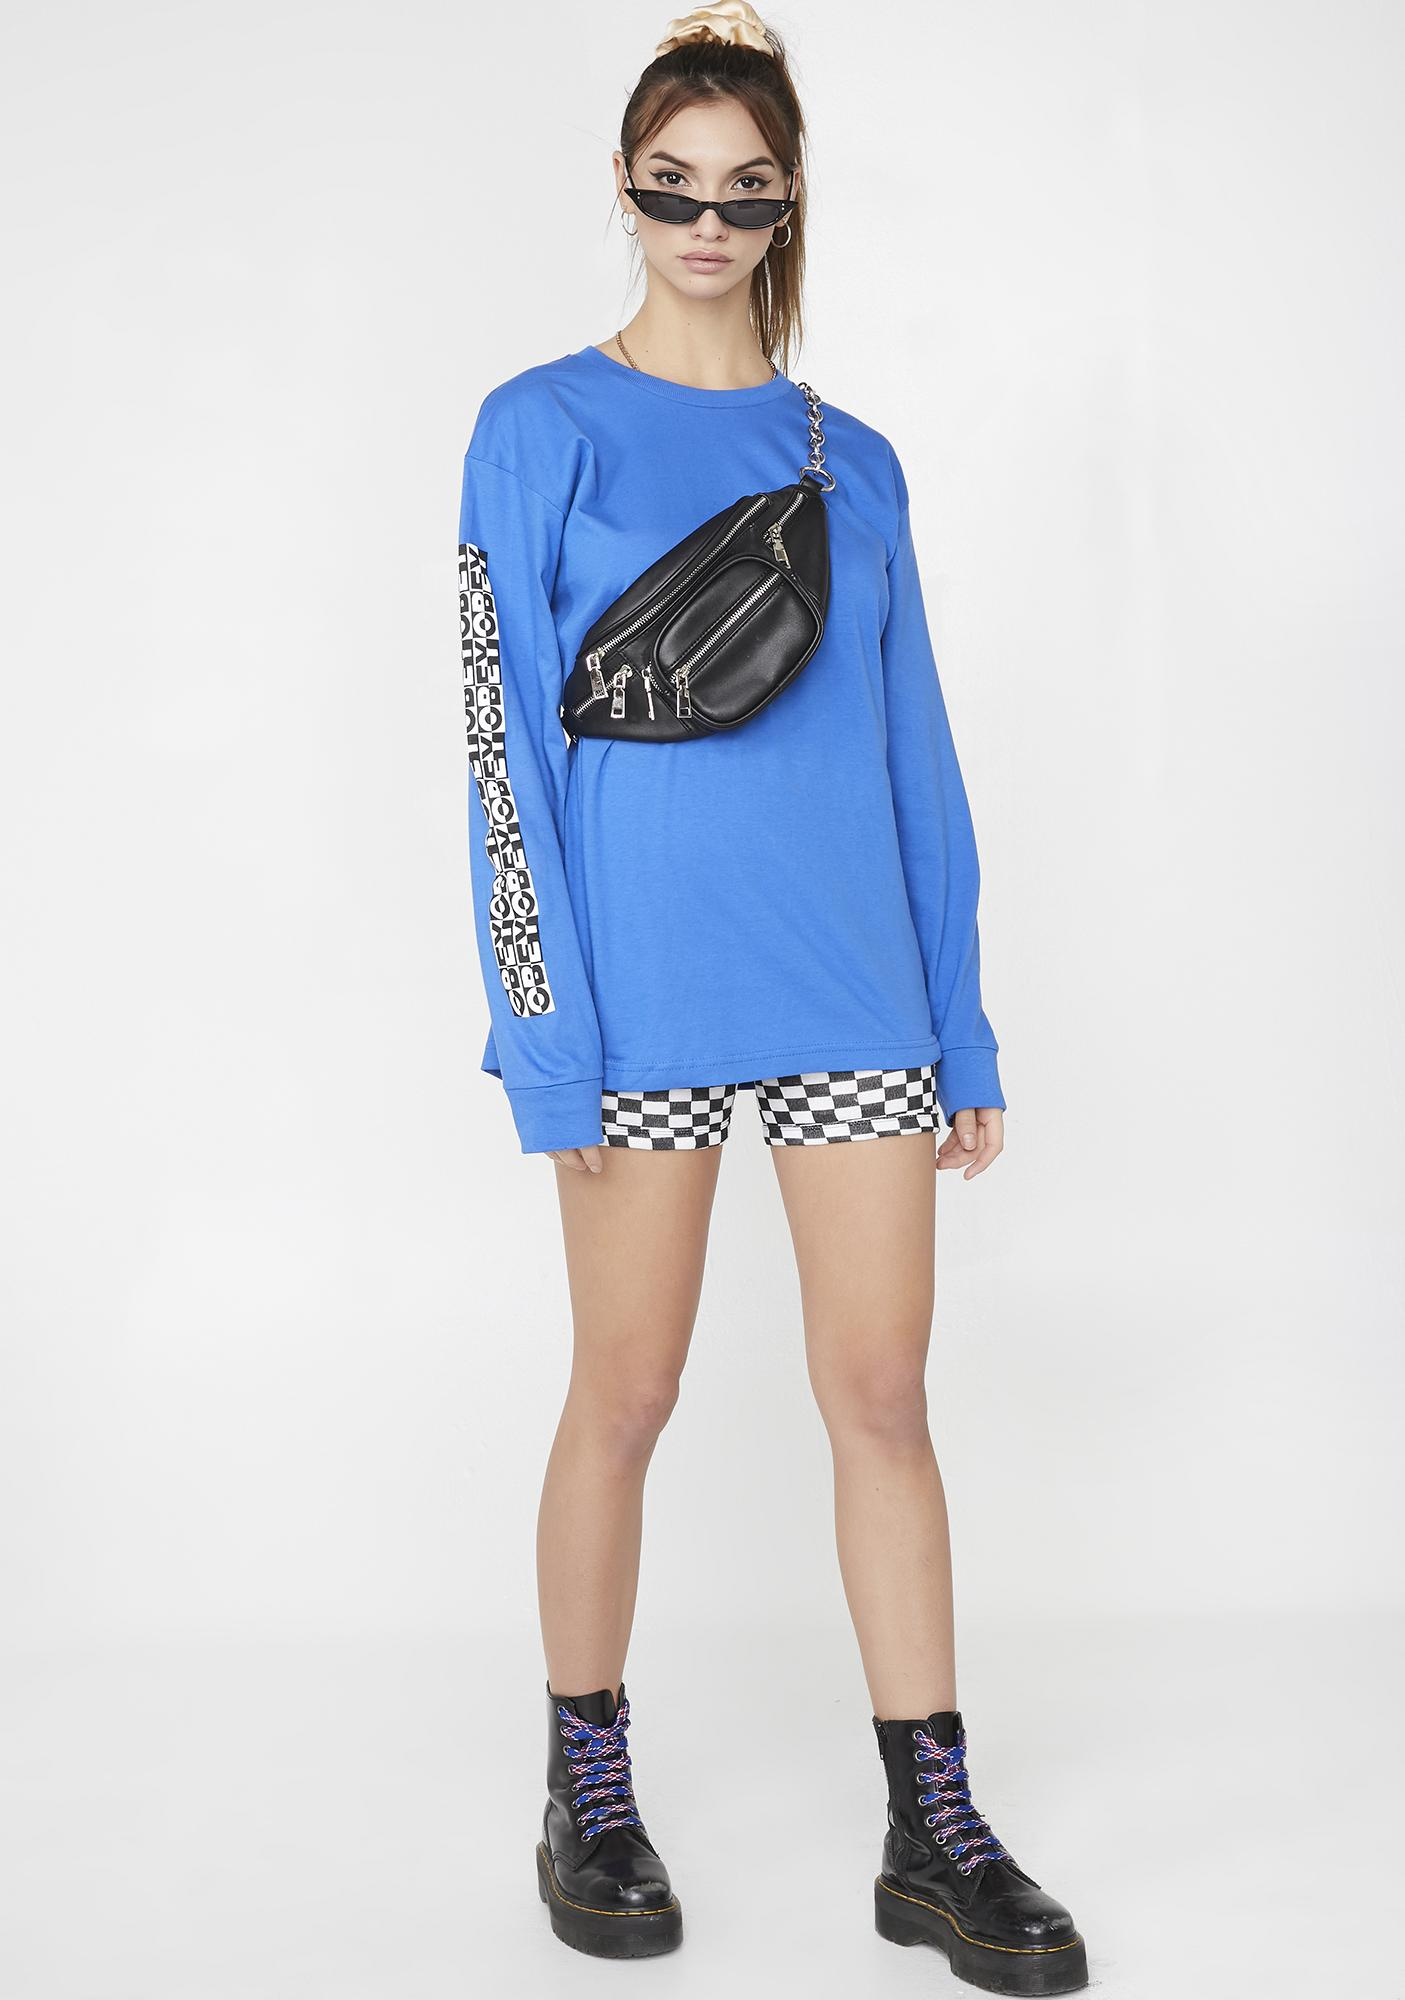 Obey Inside Out Checkerboard Graphic Tee